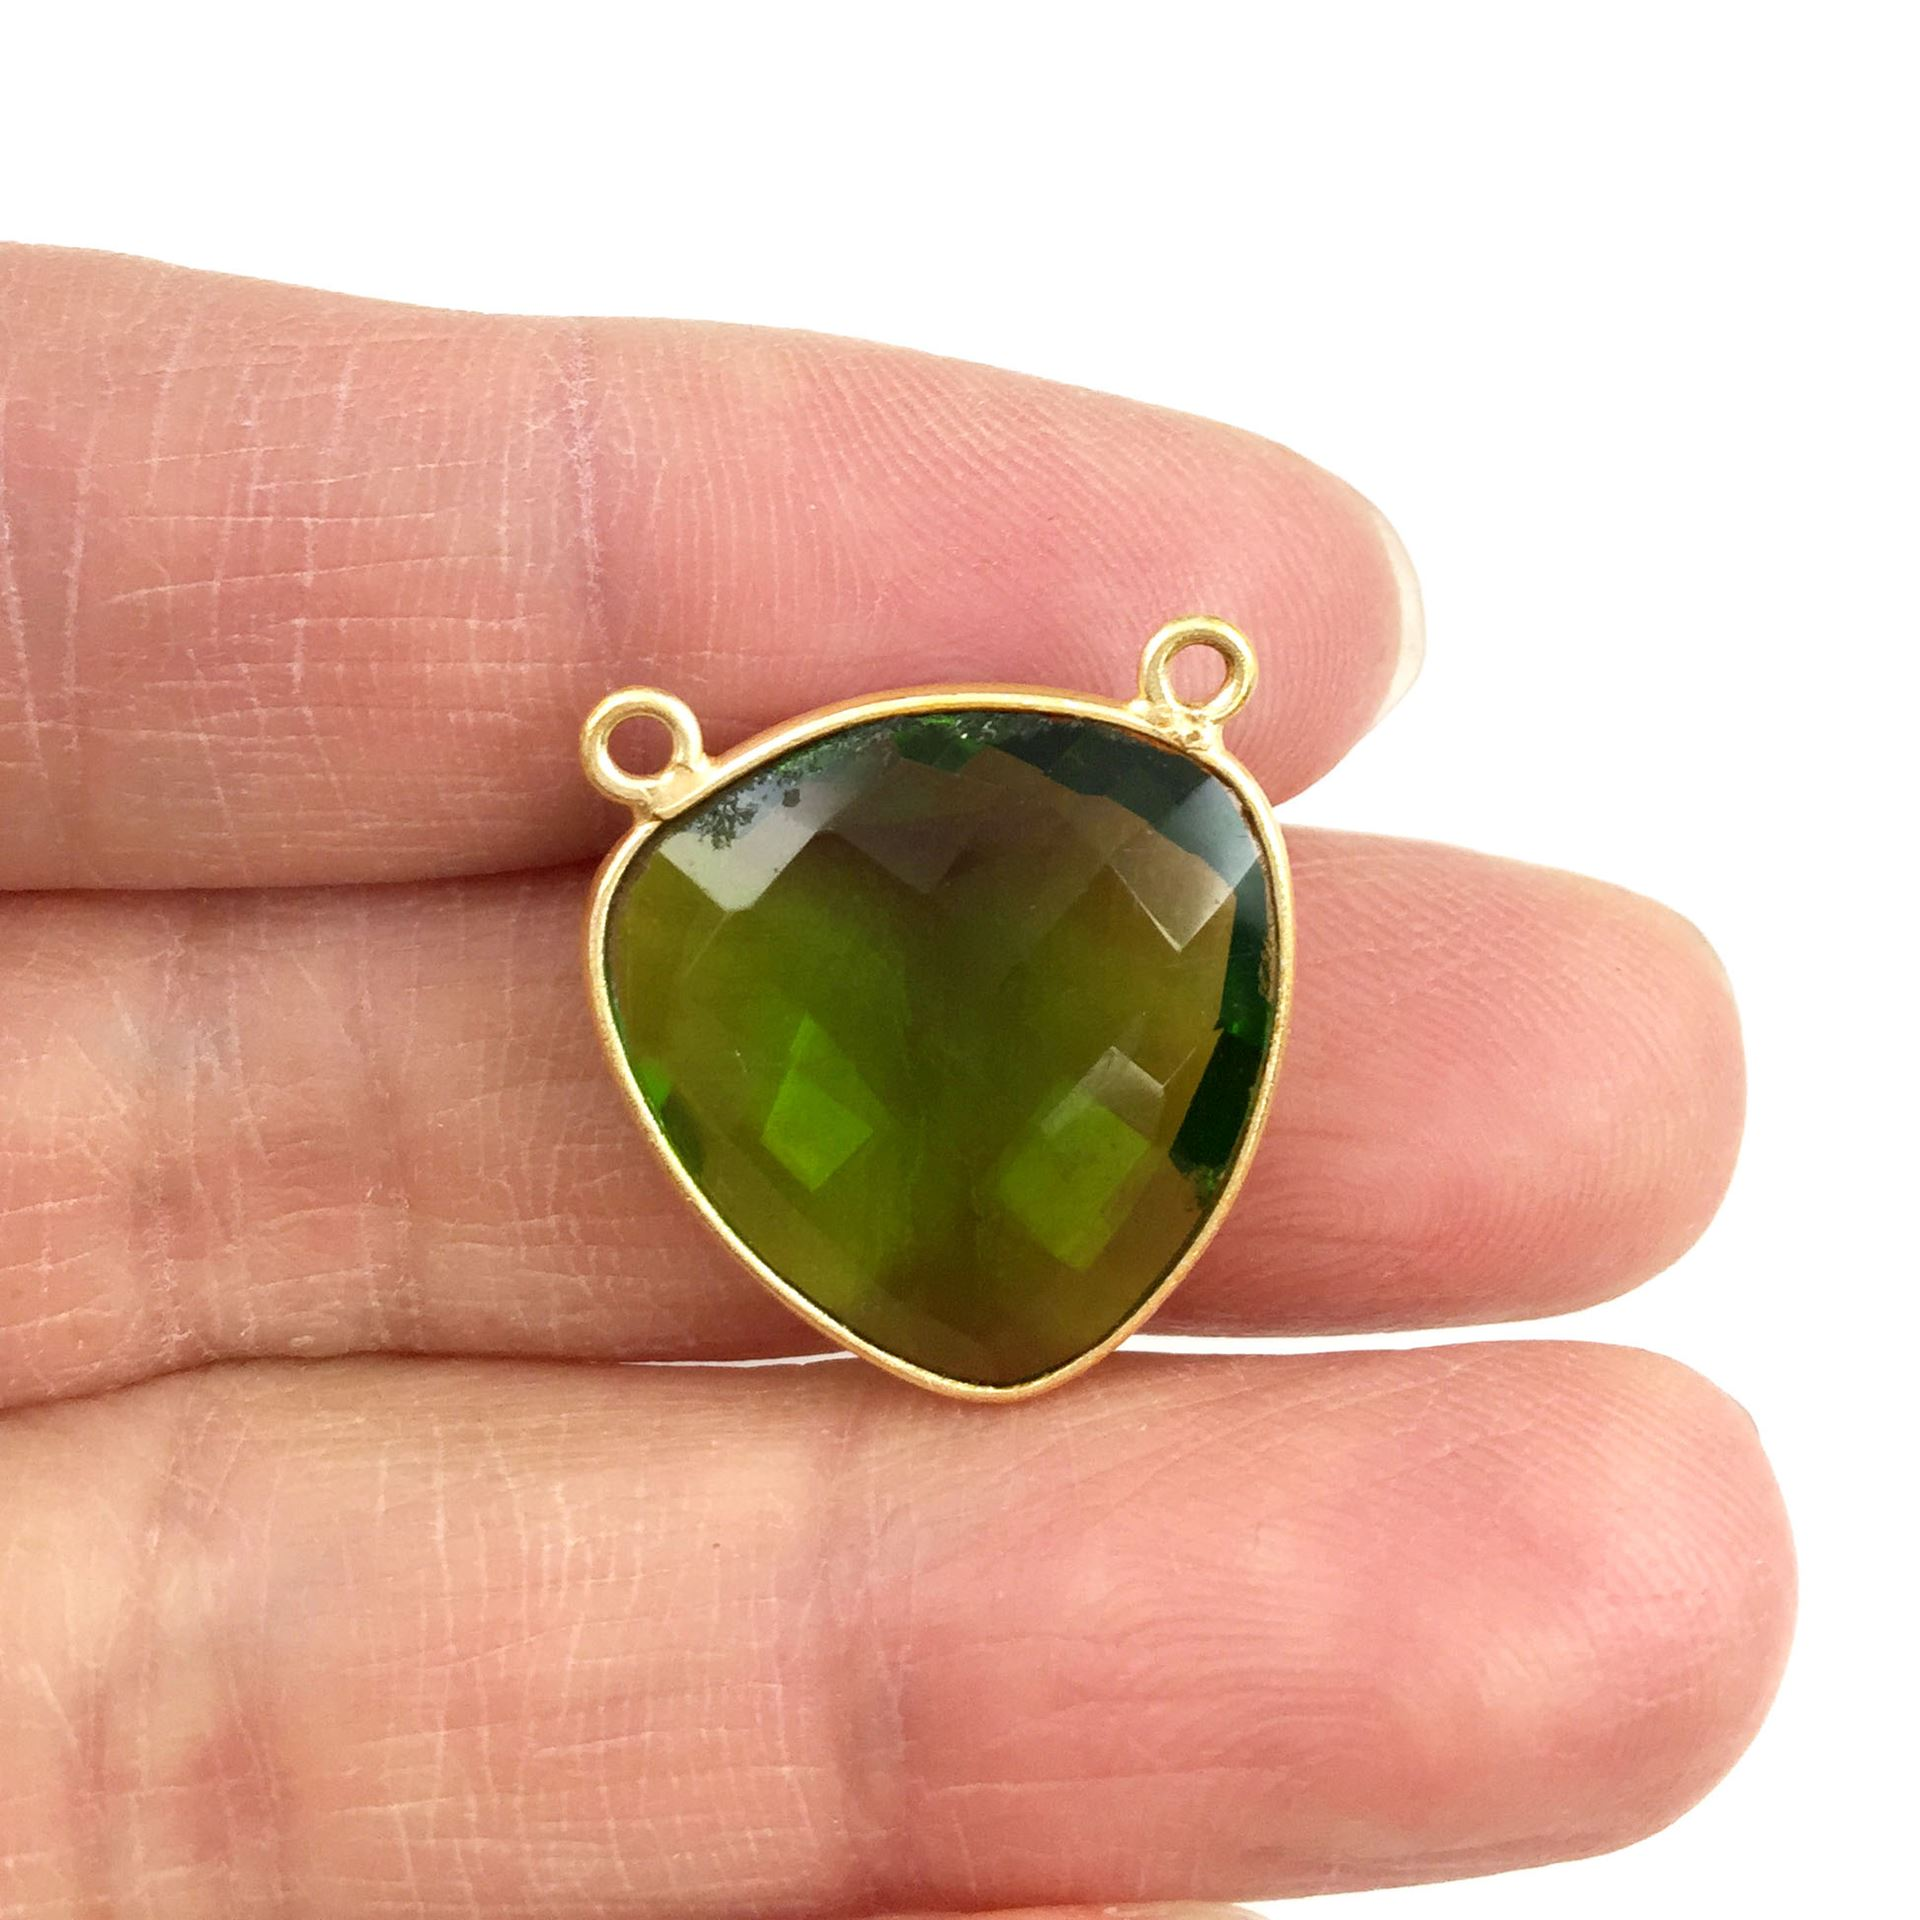 Bezel Gemstone Connector Pendant - Peridot Quartz - Gold plated Sterling Silver - Large Trillion Shaped Faceted - 18 mm - 1 piece